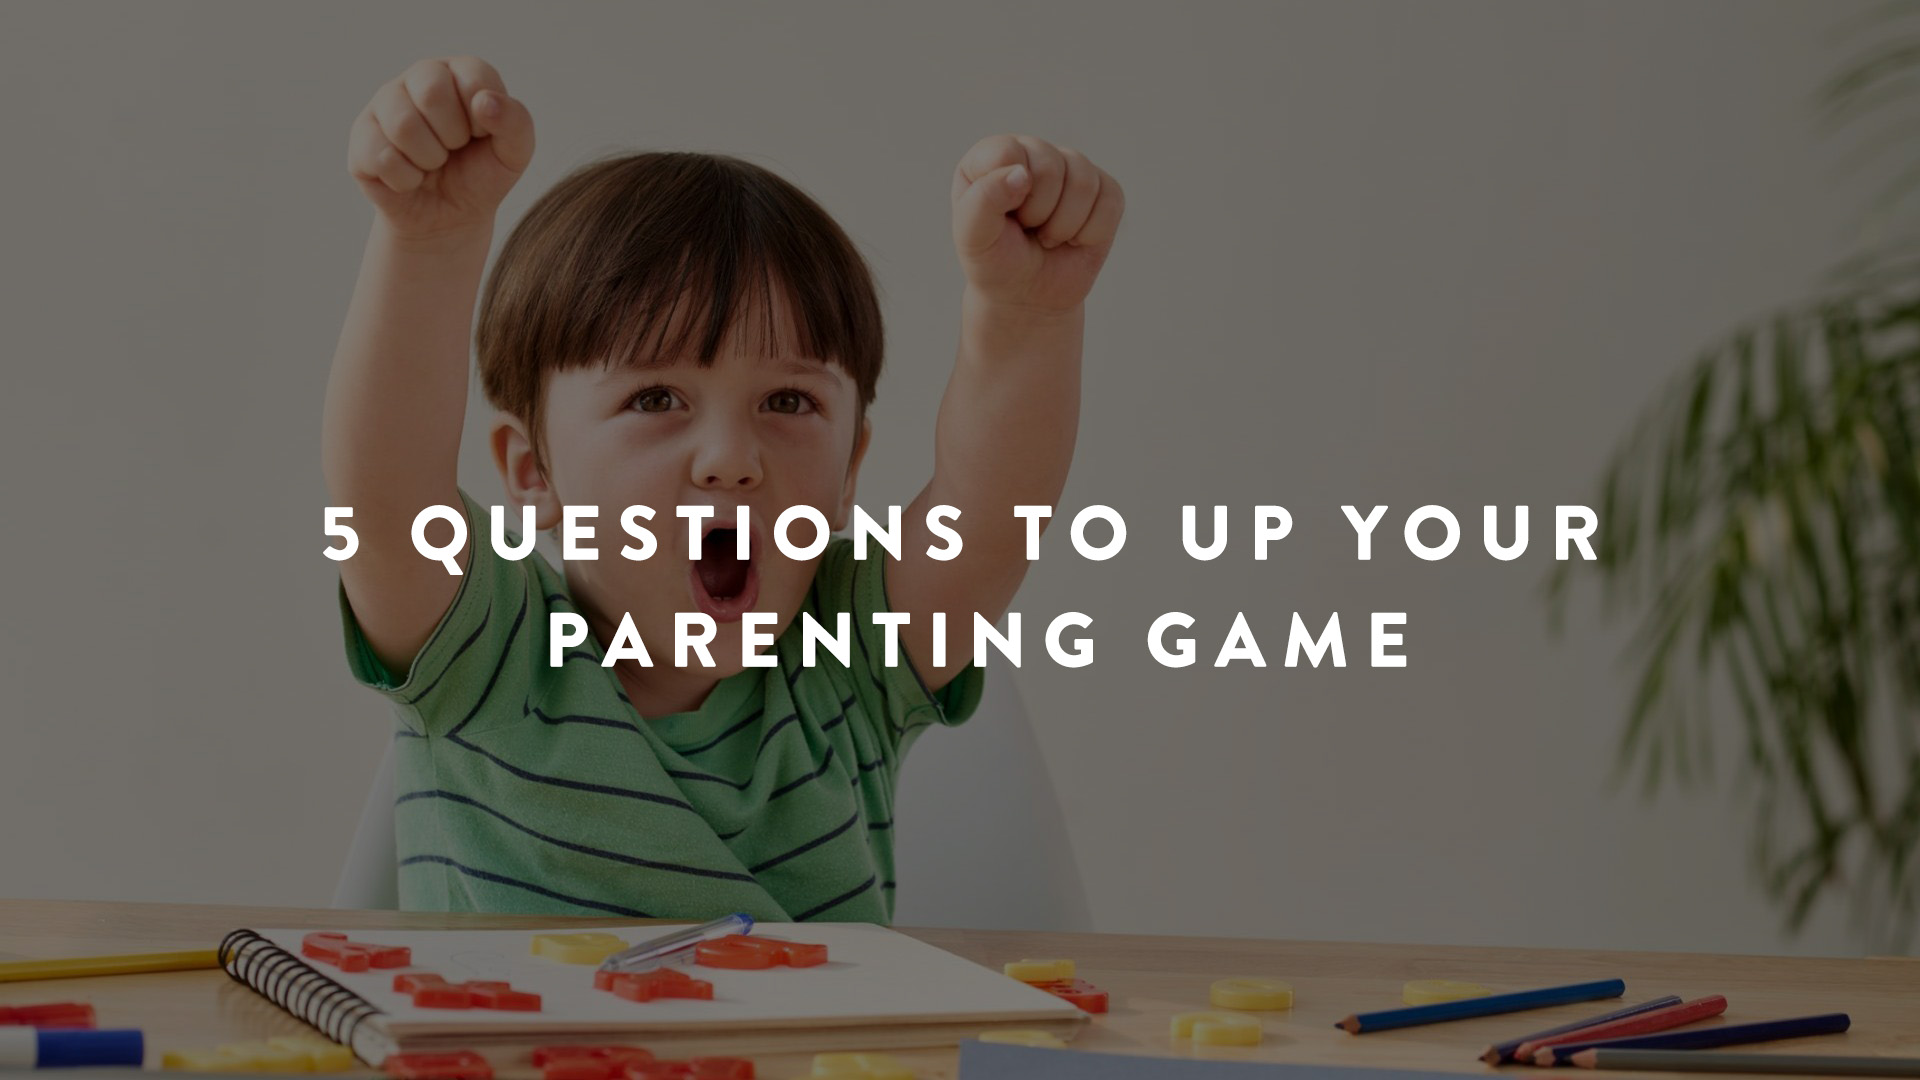 5 Questions to Up Your Parenting Game